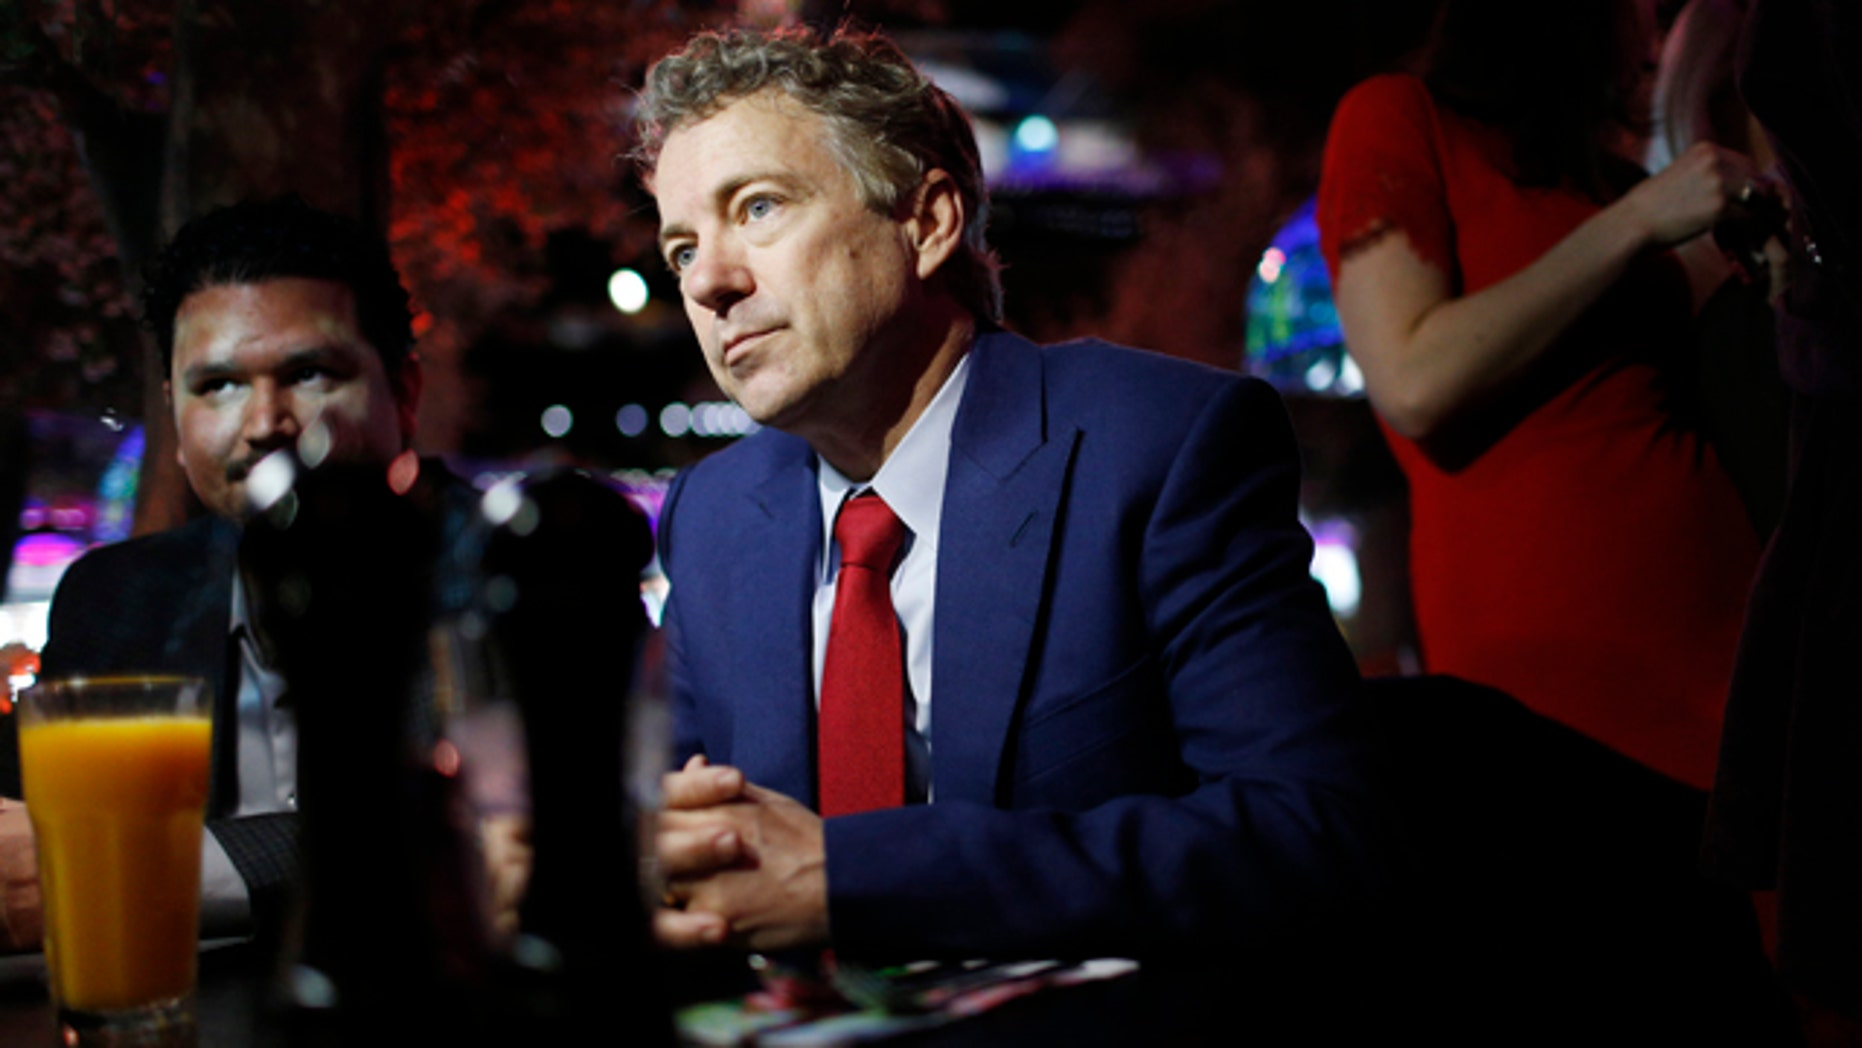 FILE - In this Jan. 16, 2015 file photo, Sen. Rand Paul, R-Ky.speaks with people at a restaurant in Las Vegas. (AP Photo/John Locher, File)